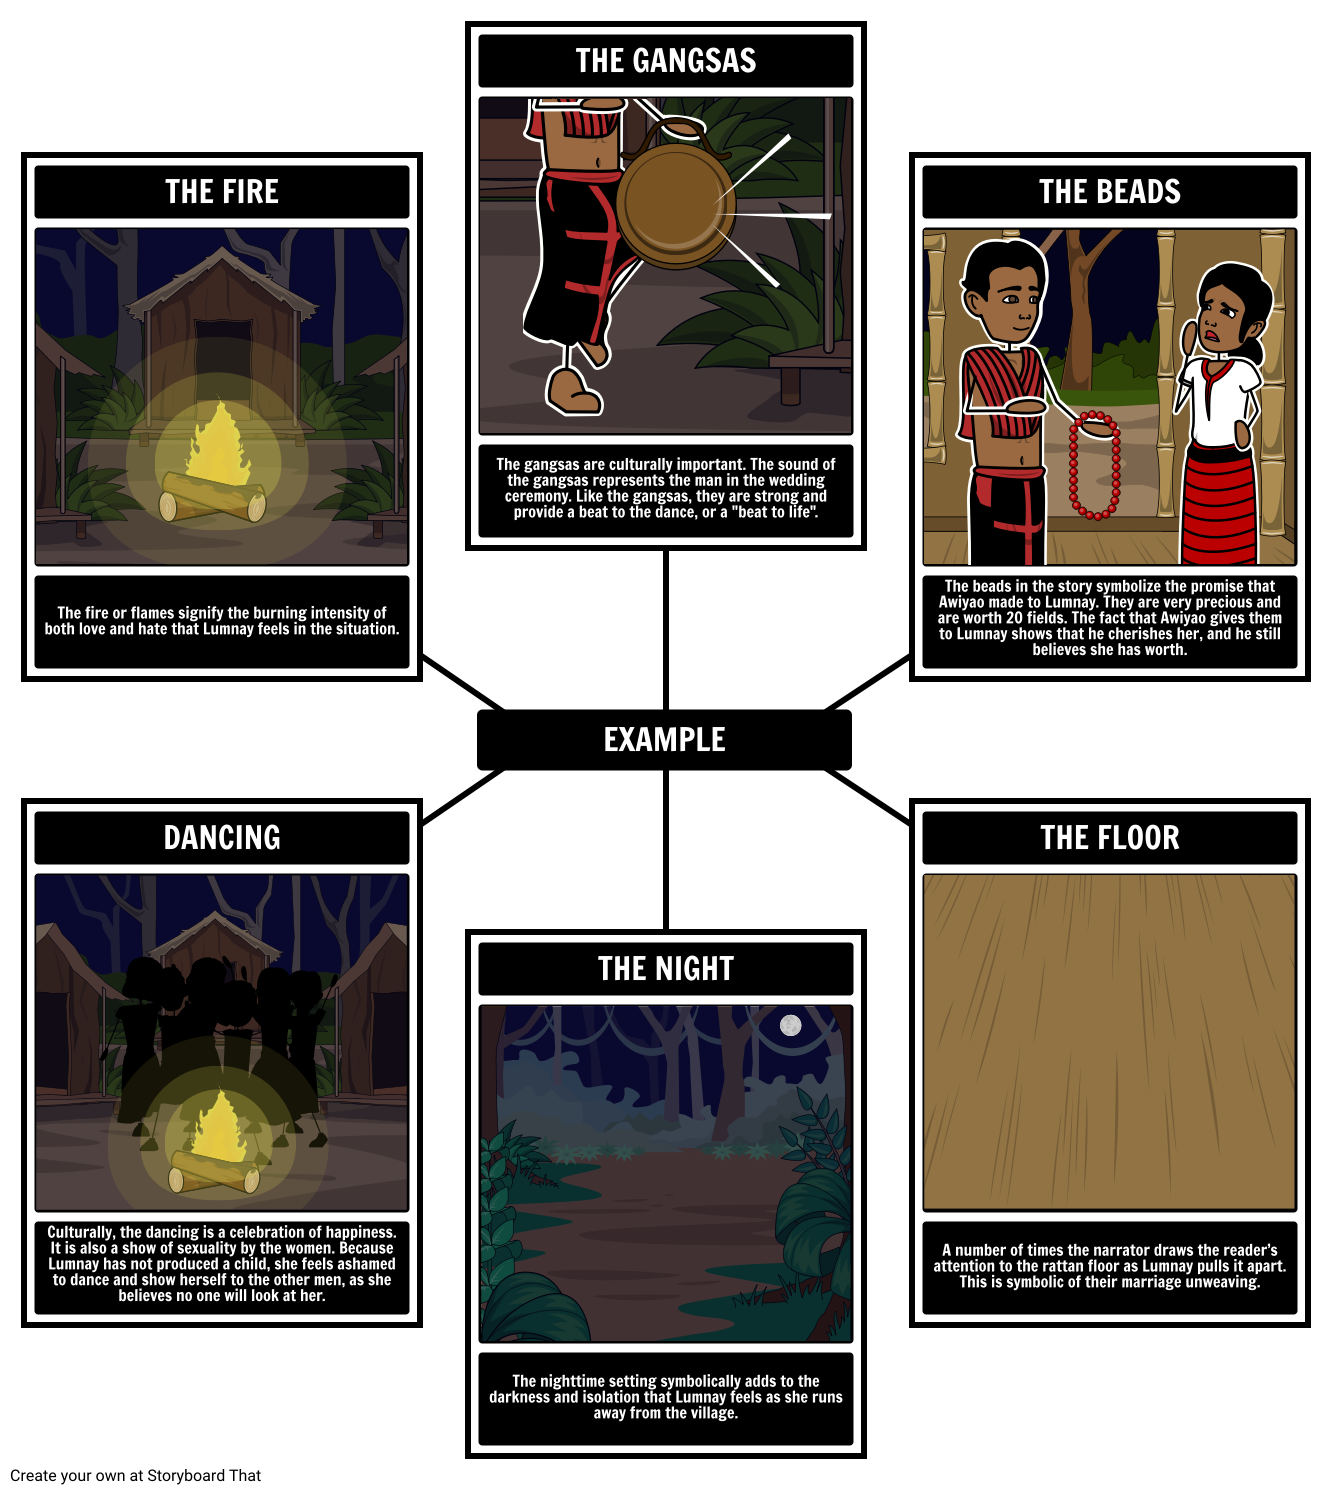 Examples of symbolism in the story